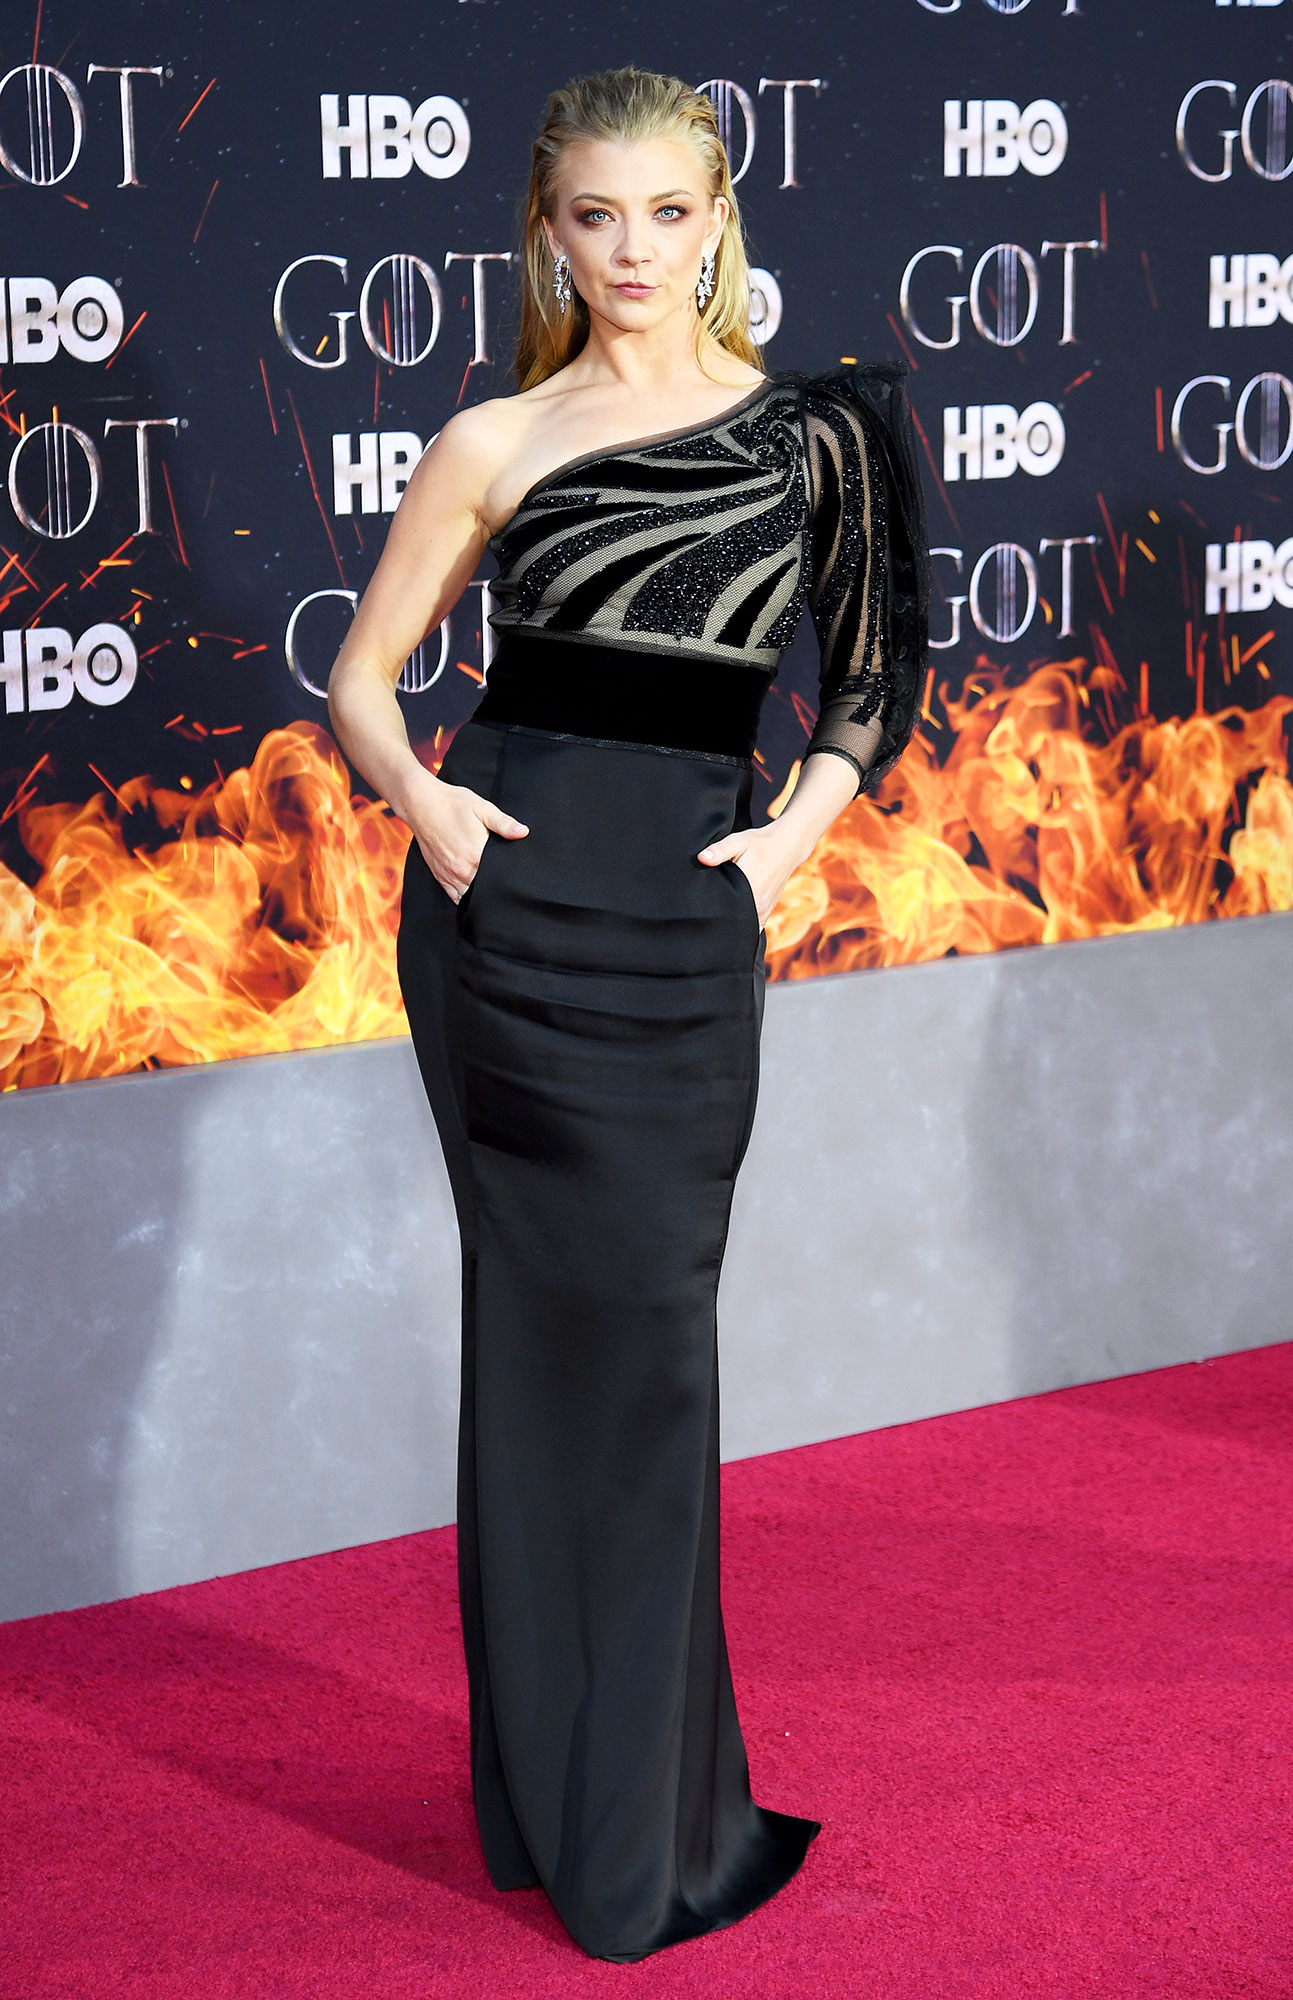 Natalie Dormer game of thrones - Wearing a one-shoulder Giorgio Armani column gown with pockets.